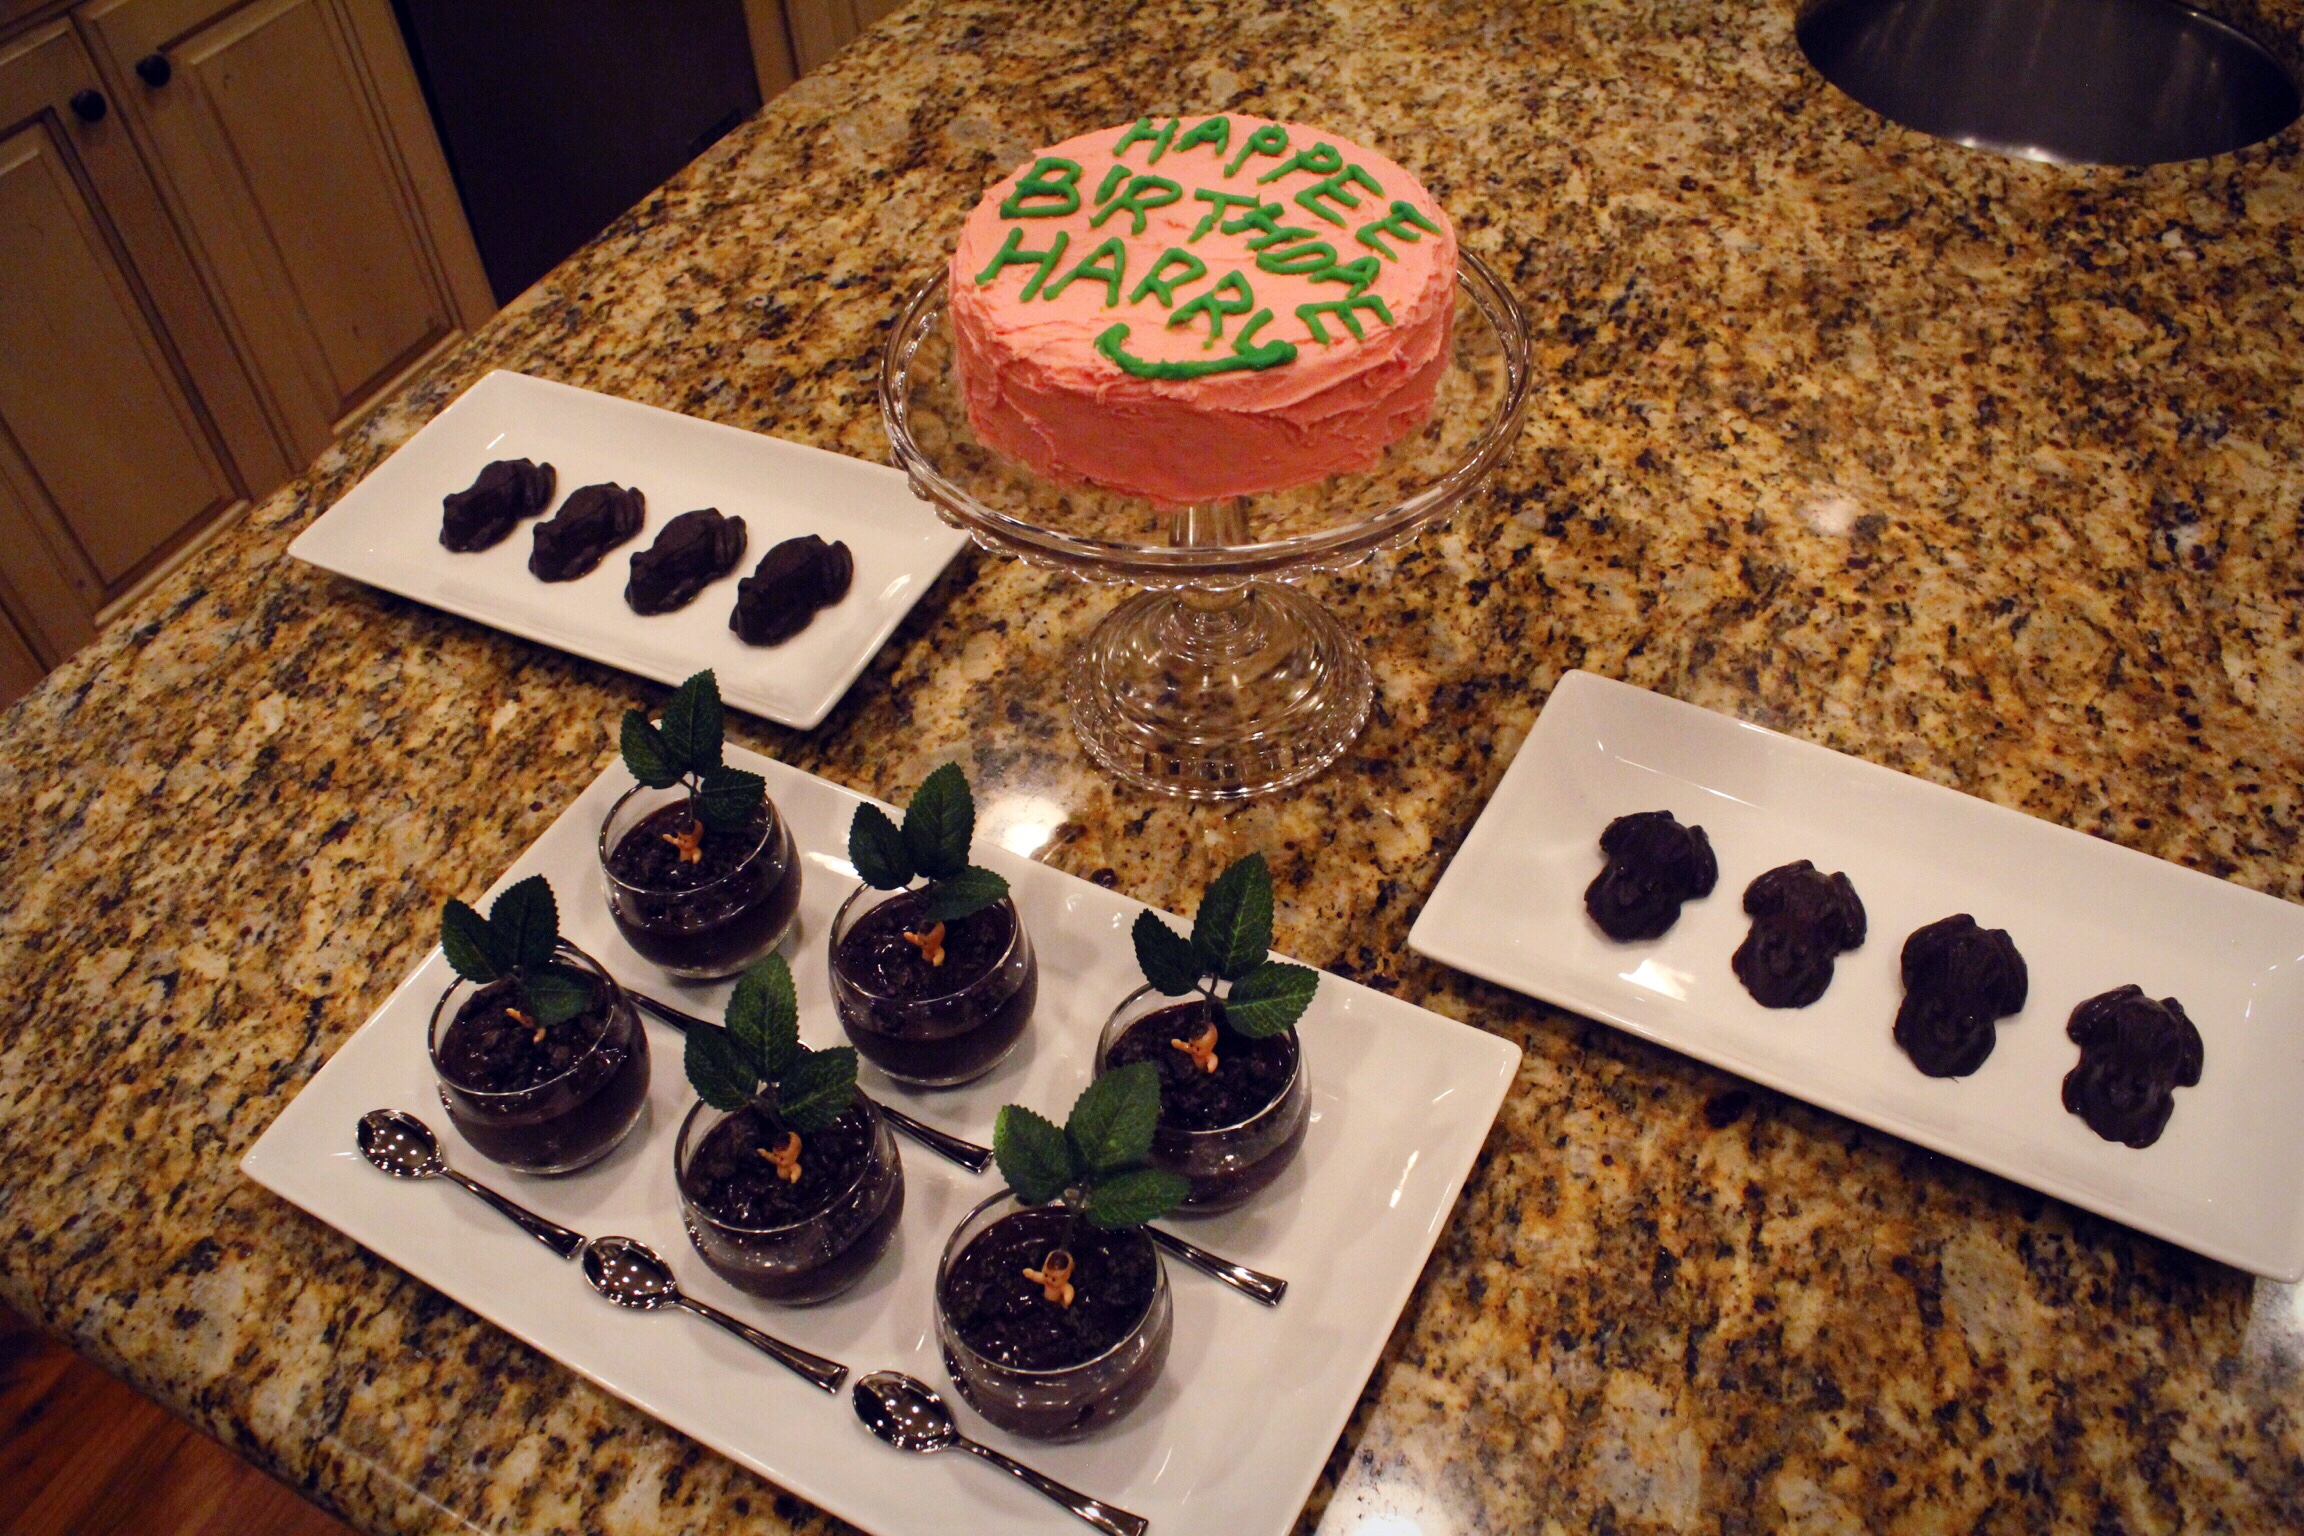 harry potter party_design organize party_treats_chocolate frogs_birthday cake_mandrake dirt cups.JPG